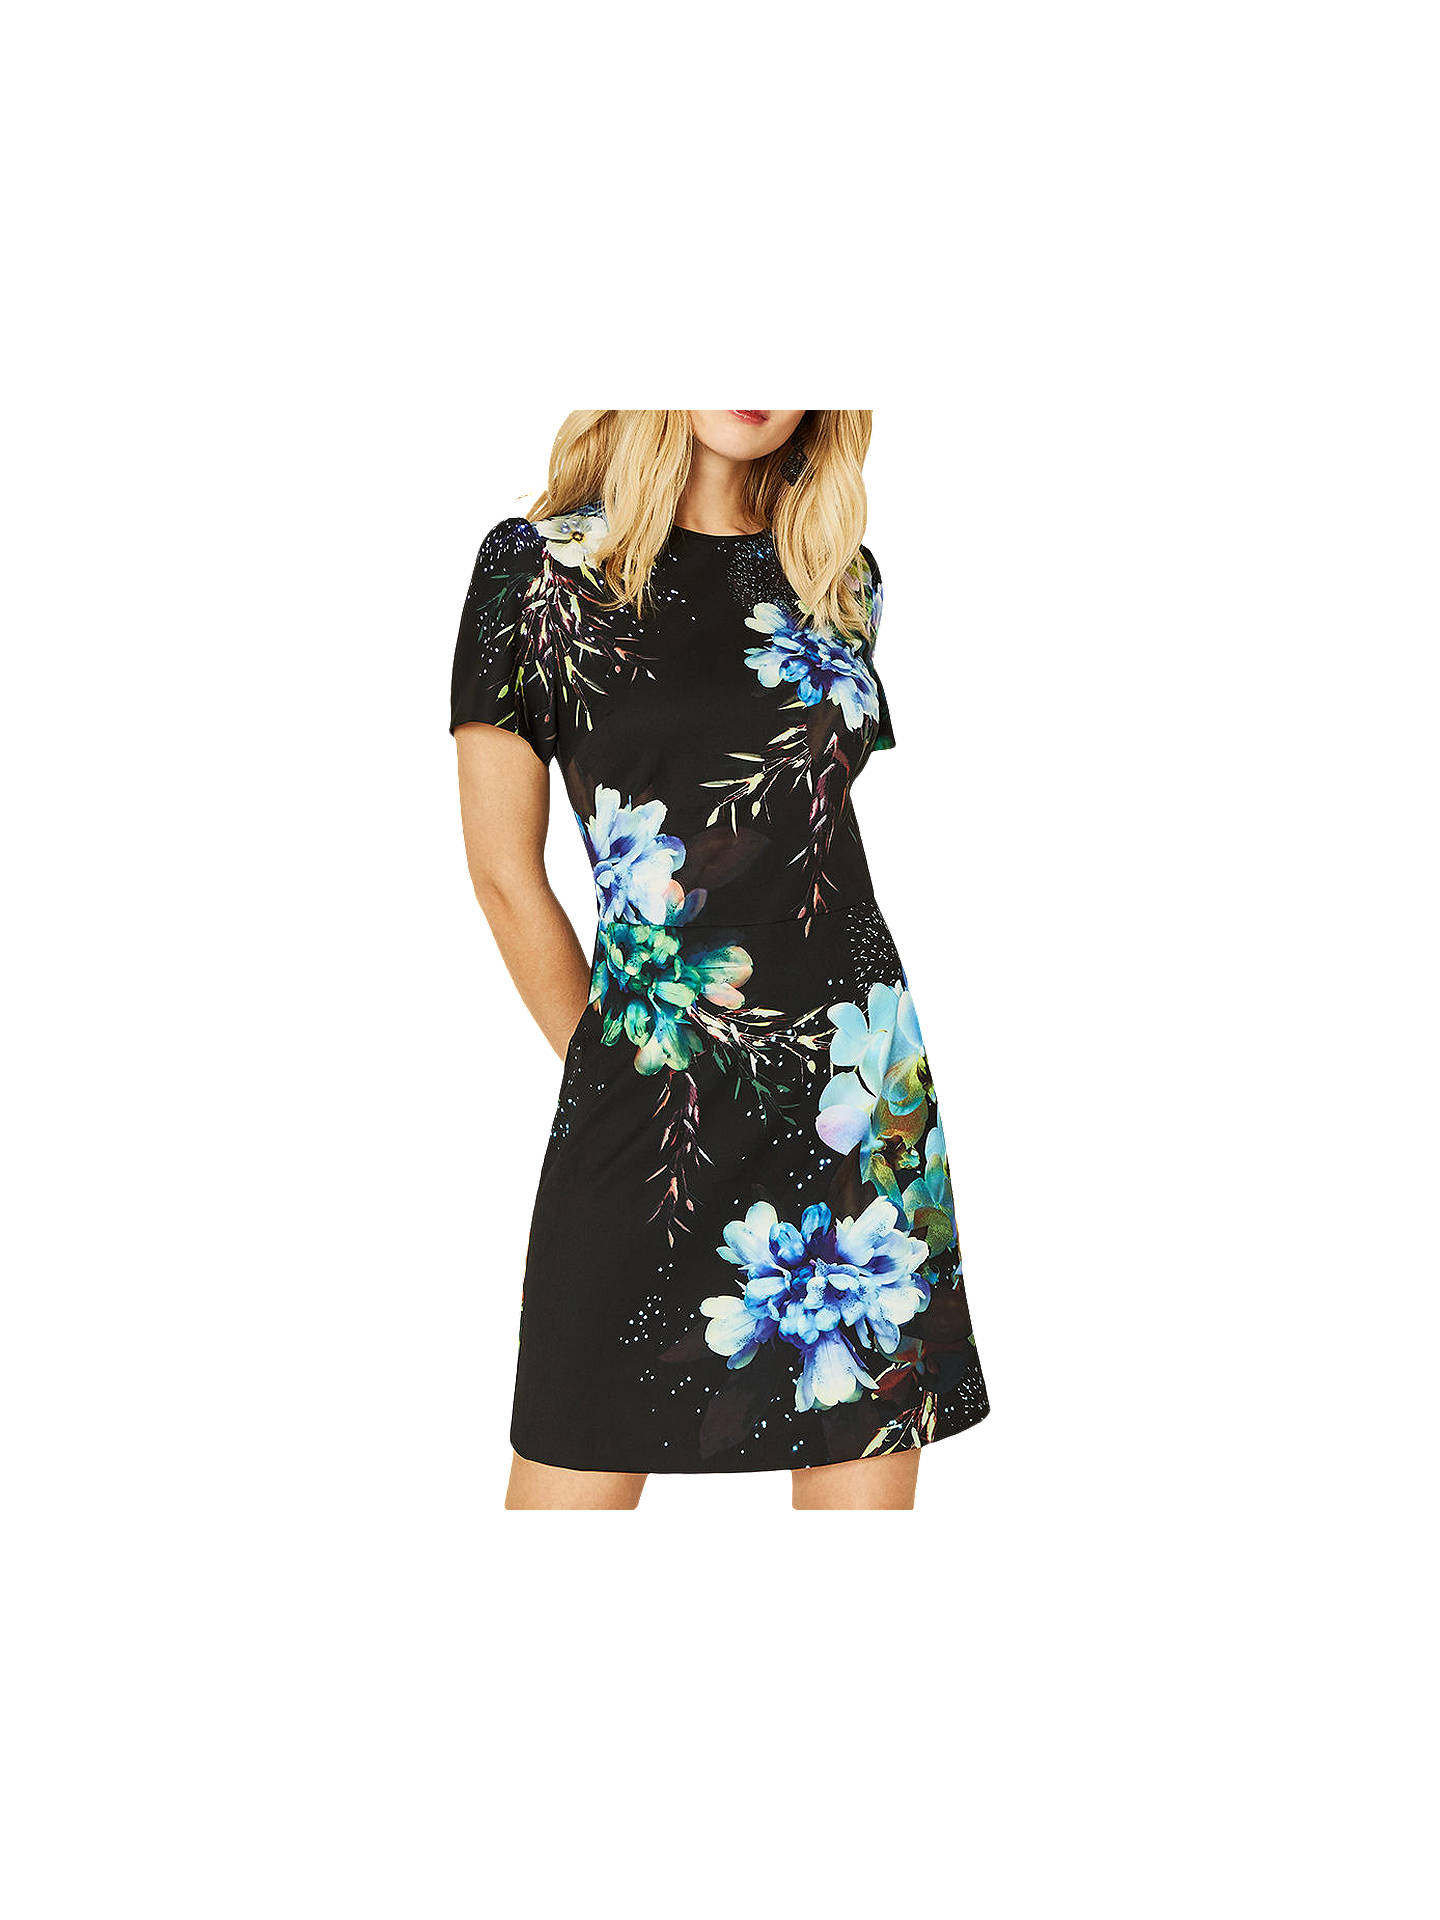 BuyOasis Fairytale Shift Dress, Multi/Black, 6 Online at johnlewis.com